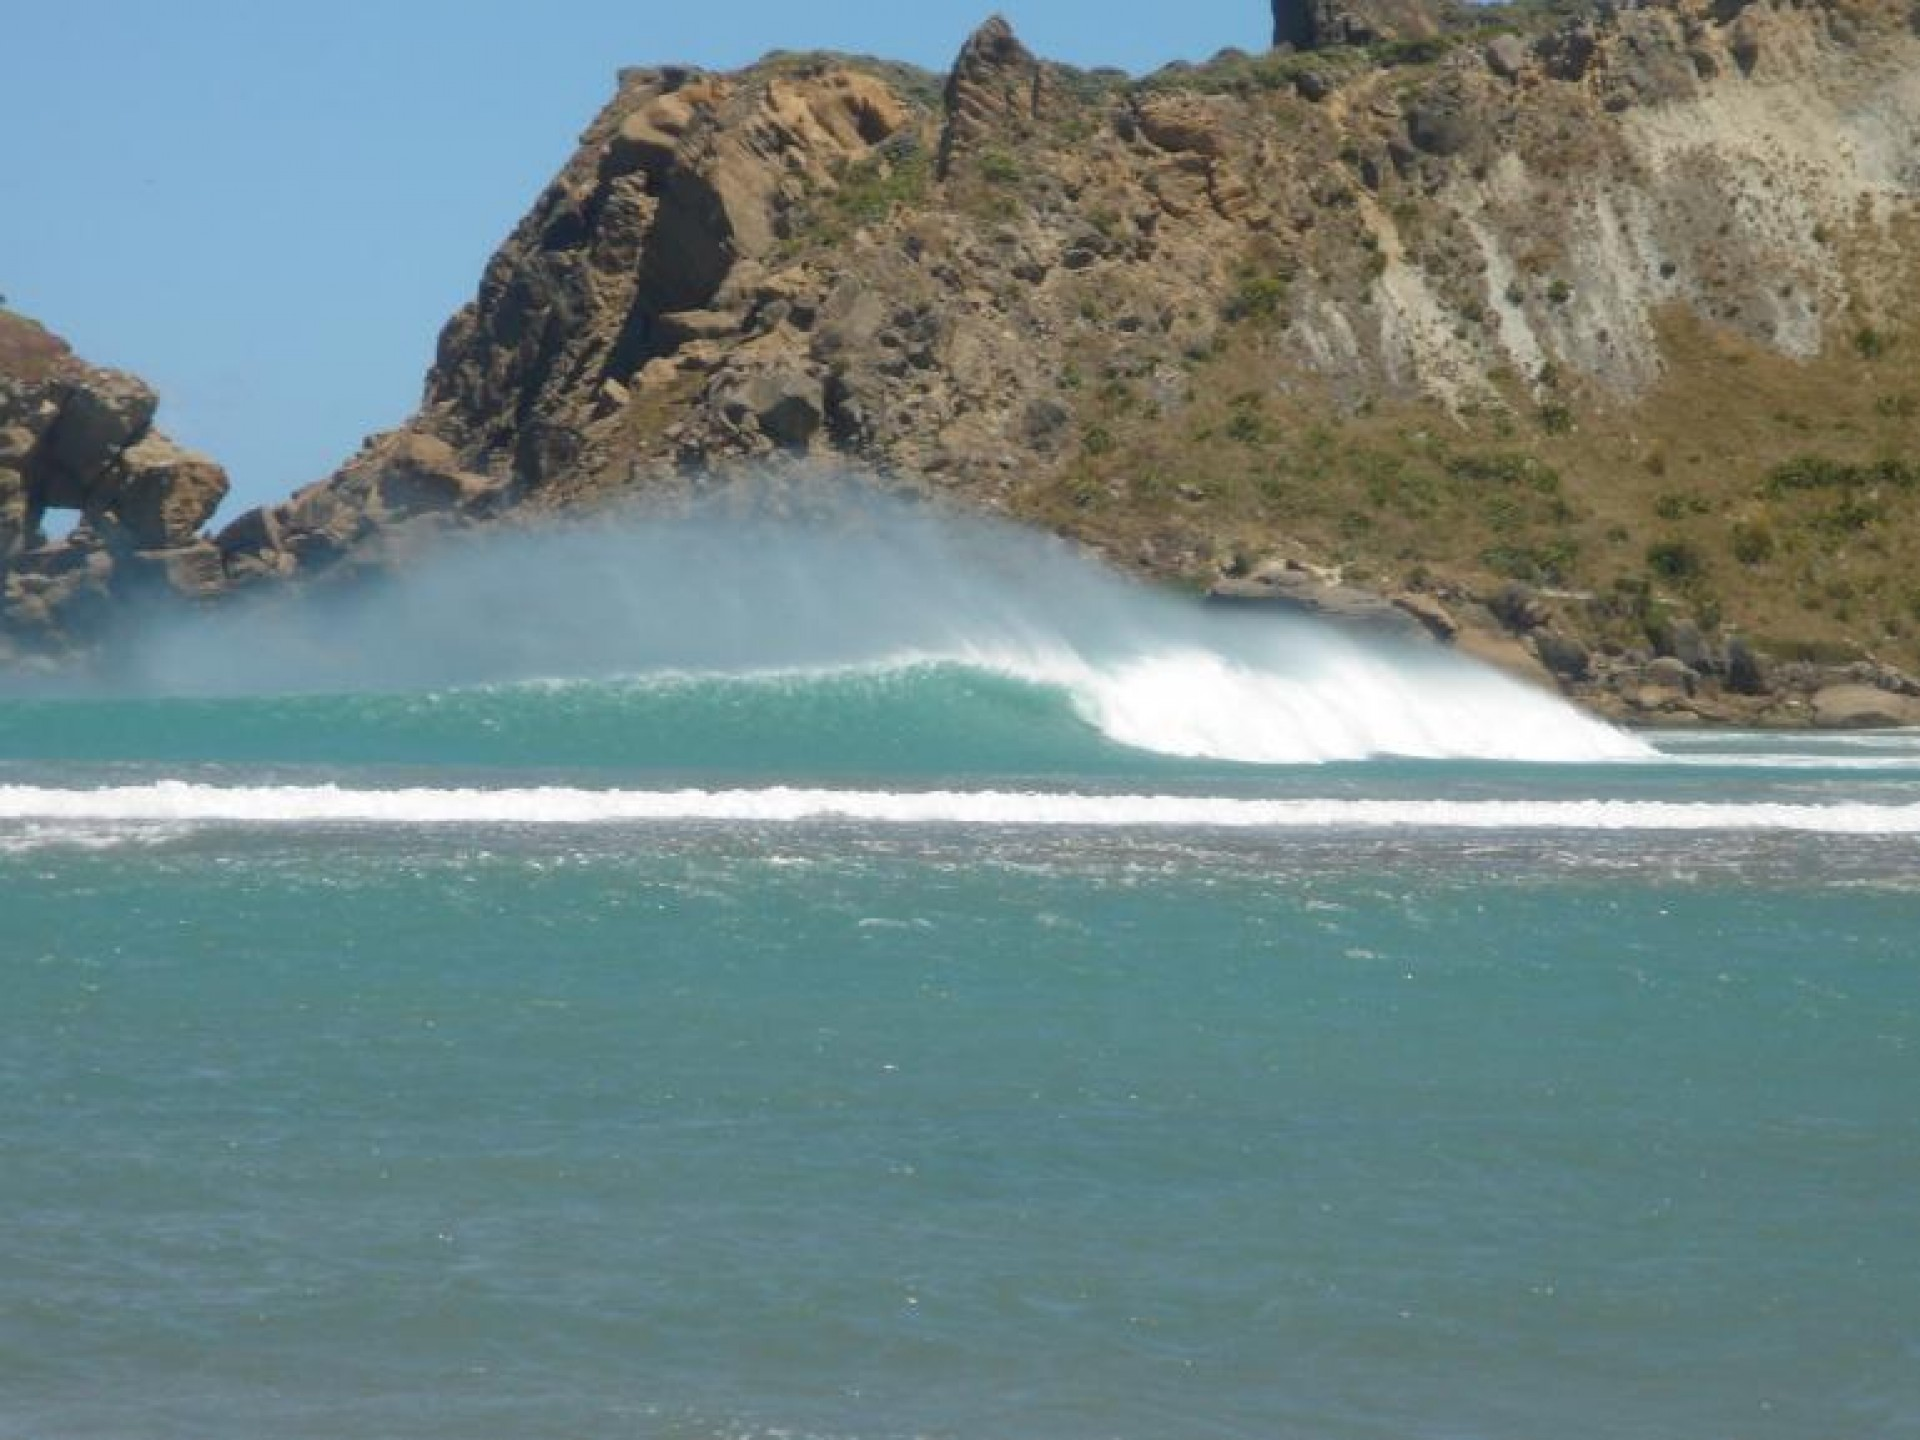 Stud's photo of Castlepoint